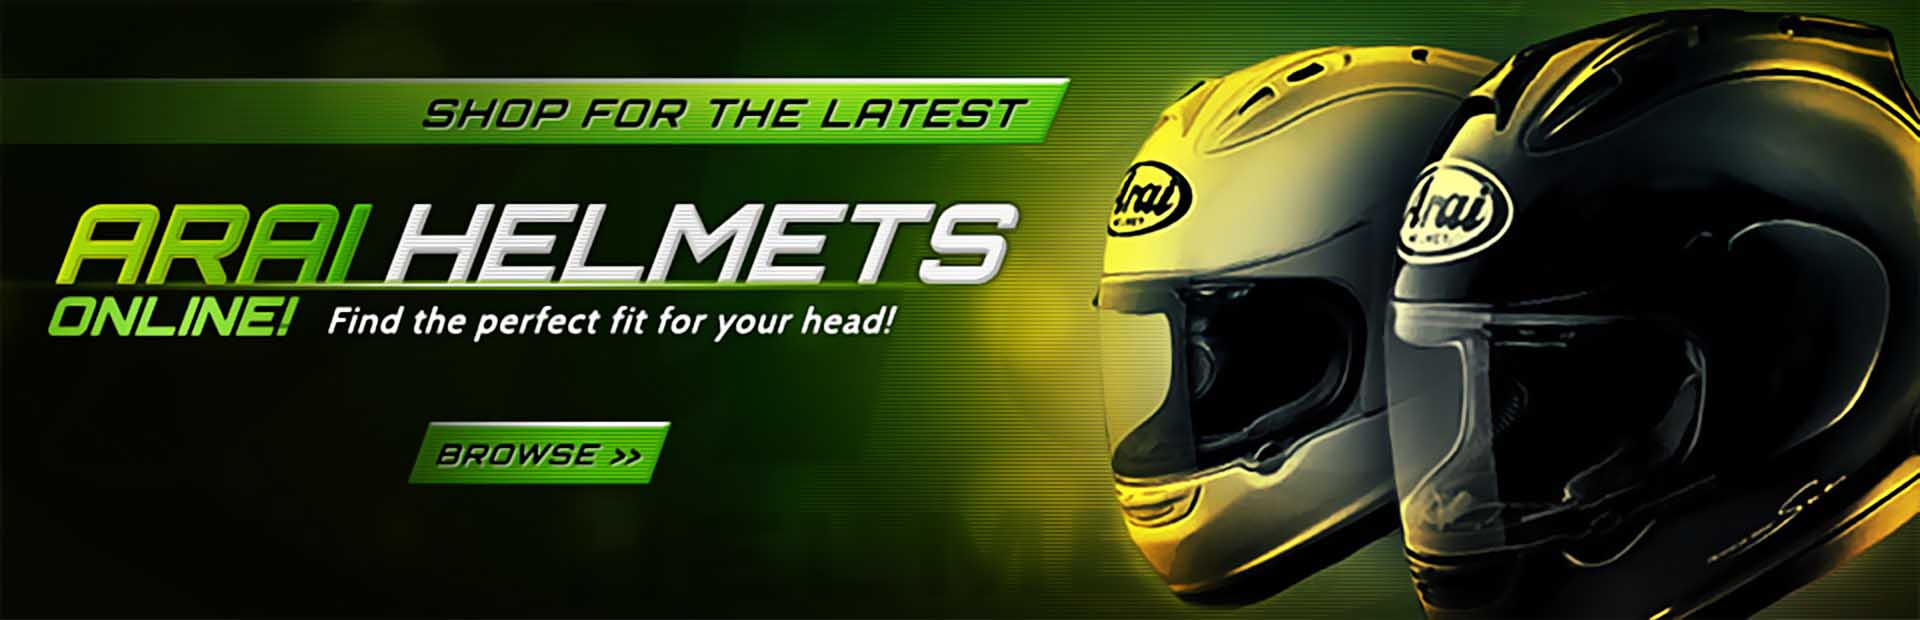 Click here to browse Arai helmets online!